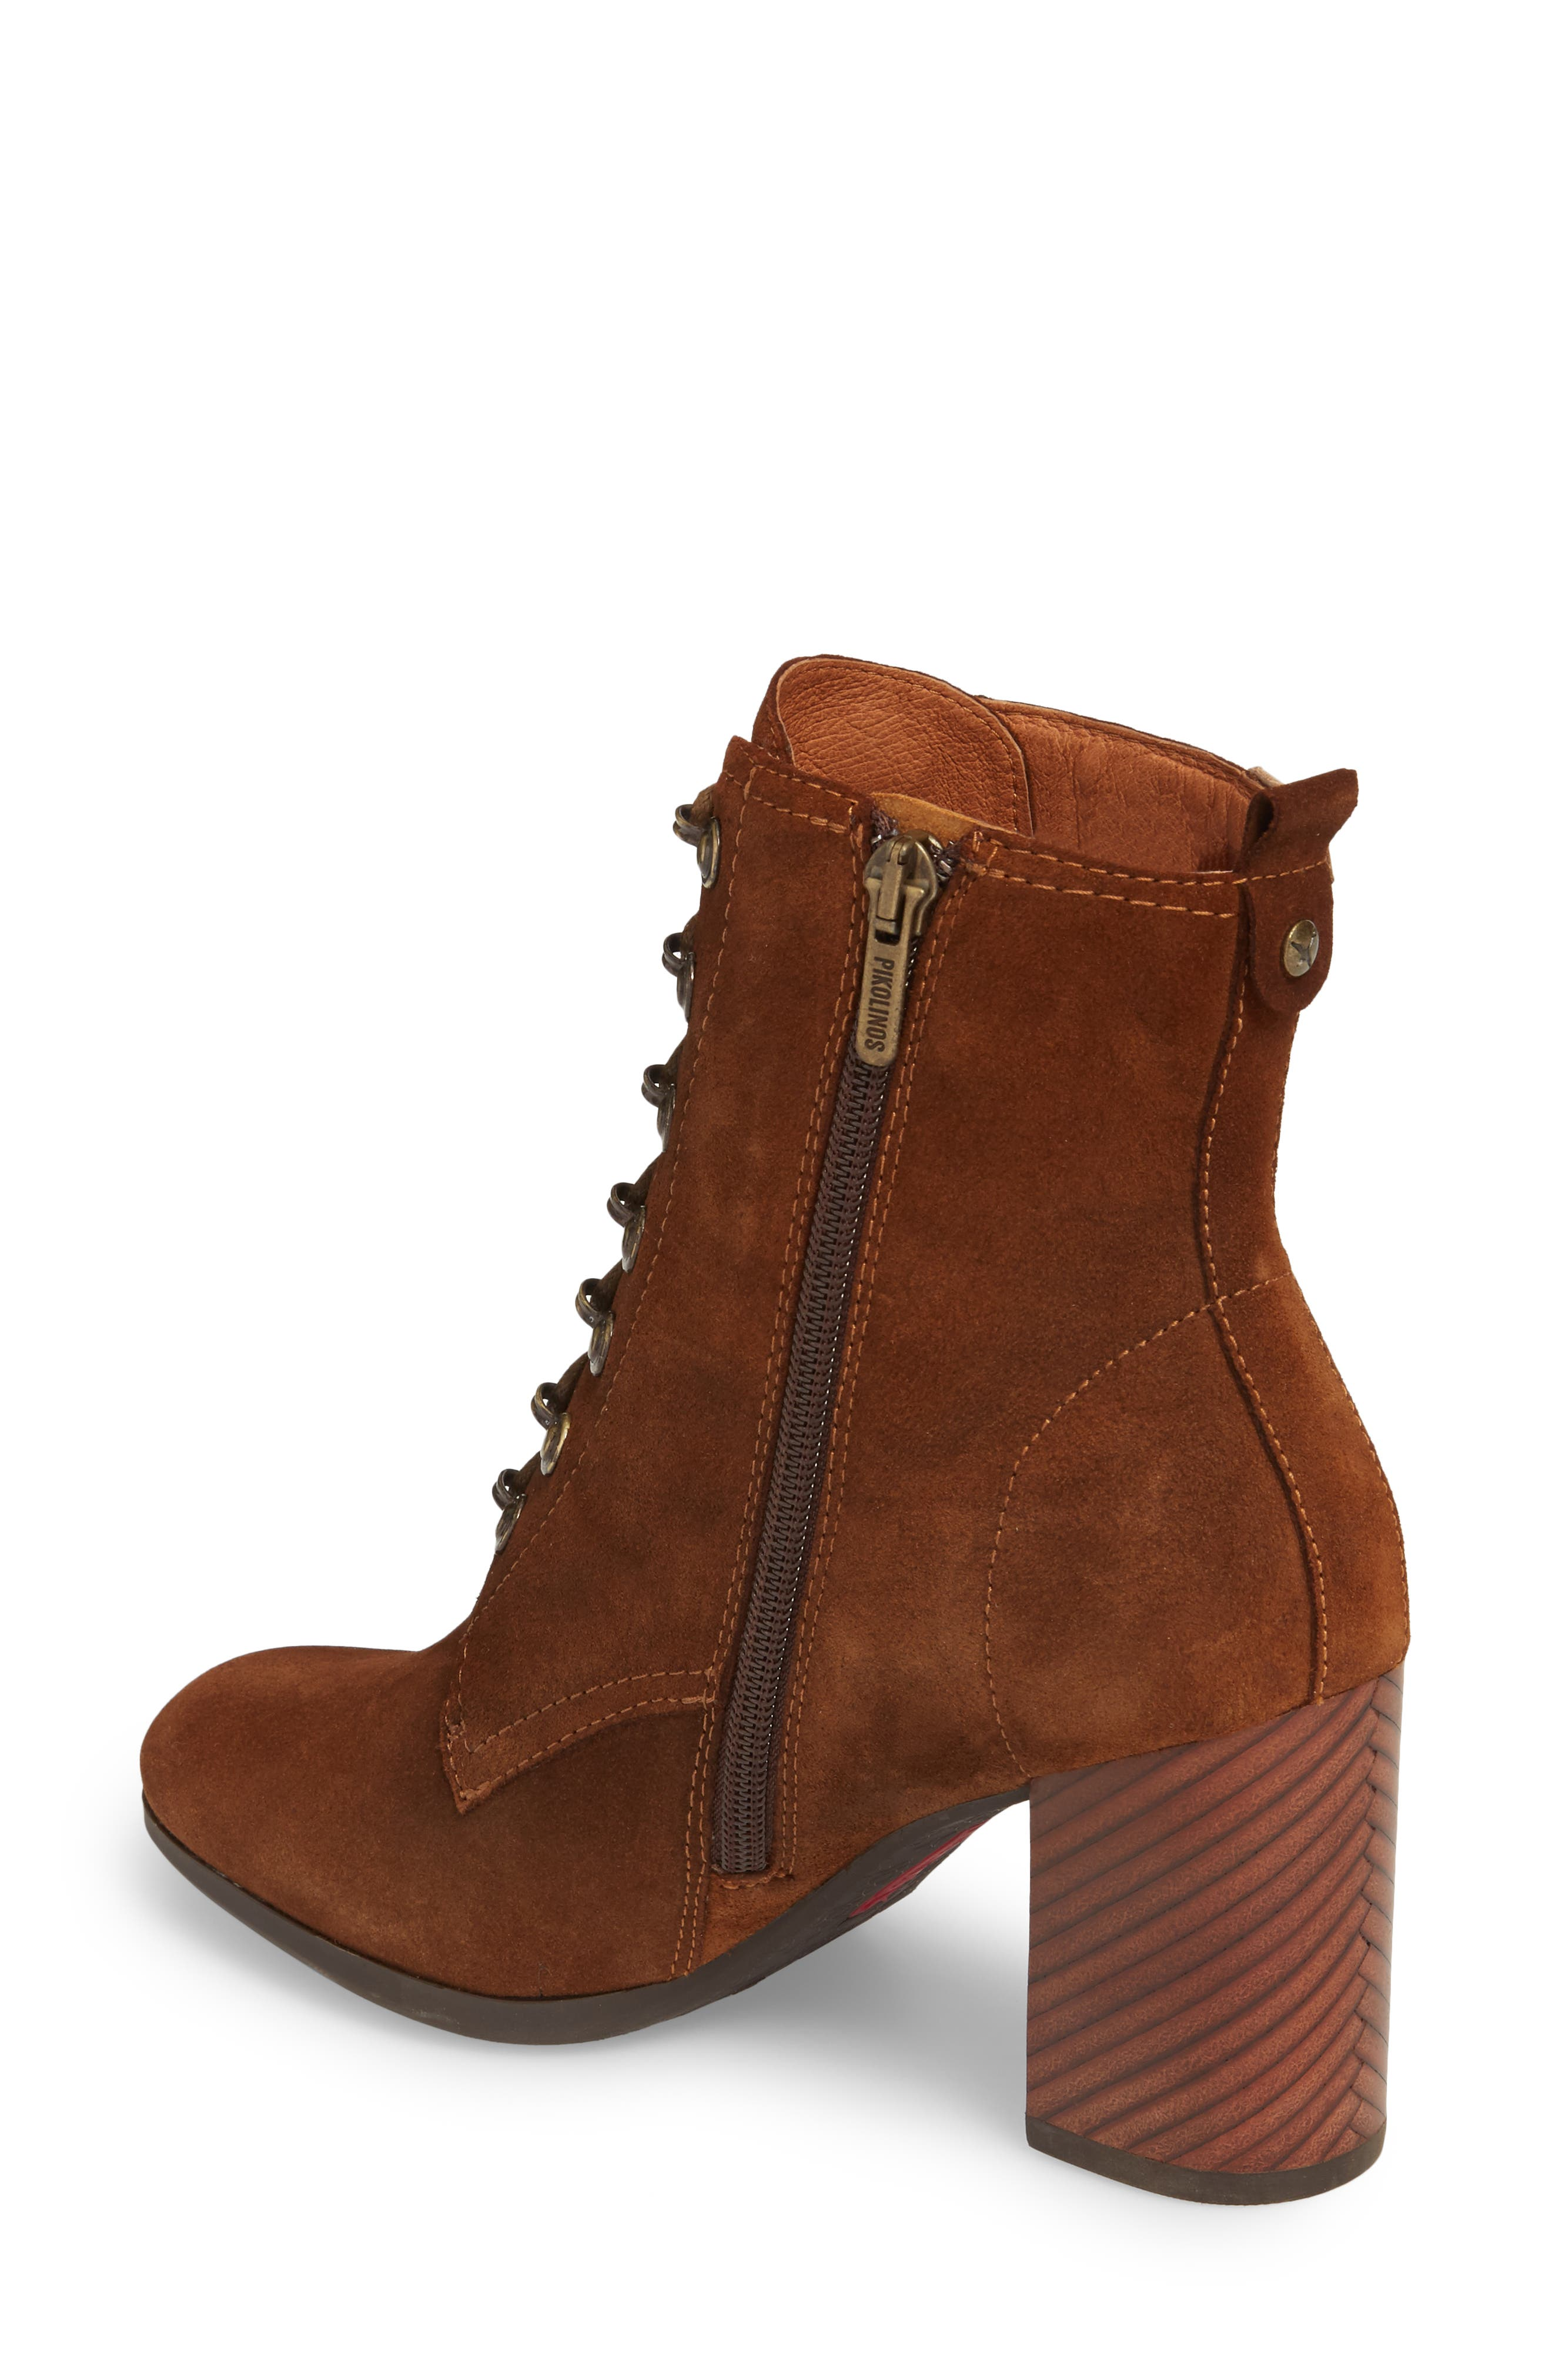 Aragon Lace-Up Boot,                             Alternate thumbnail 2, color,                             Brandy Leather